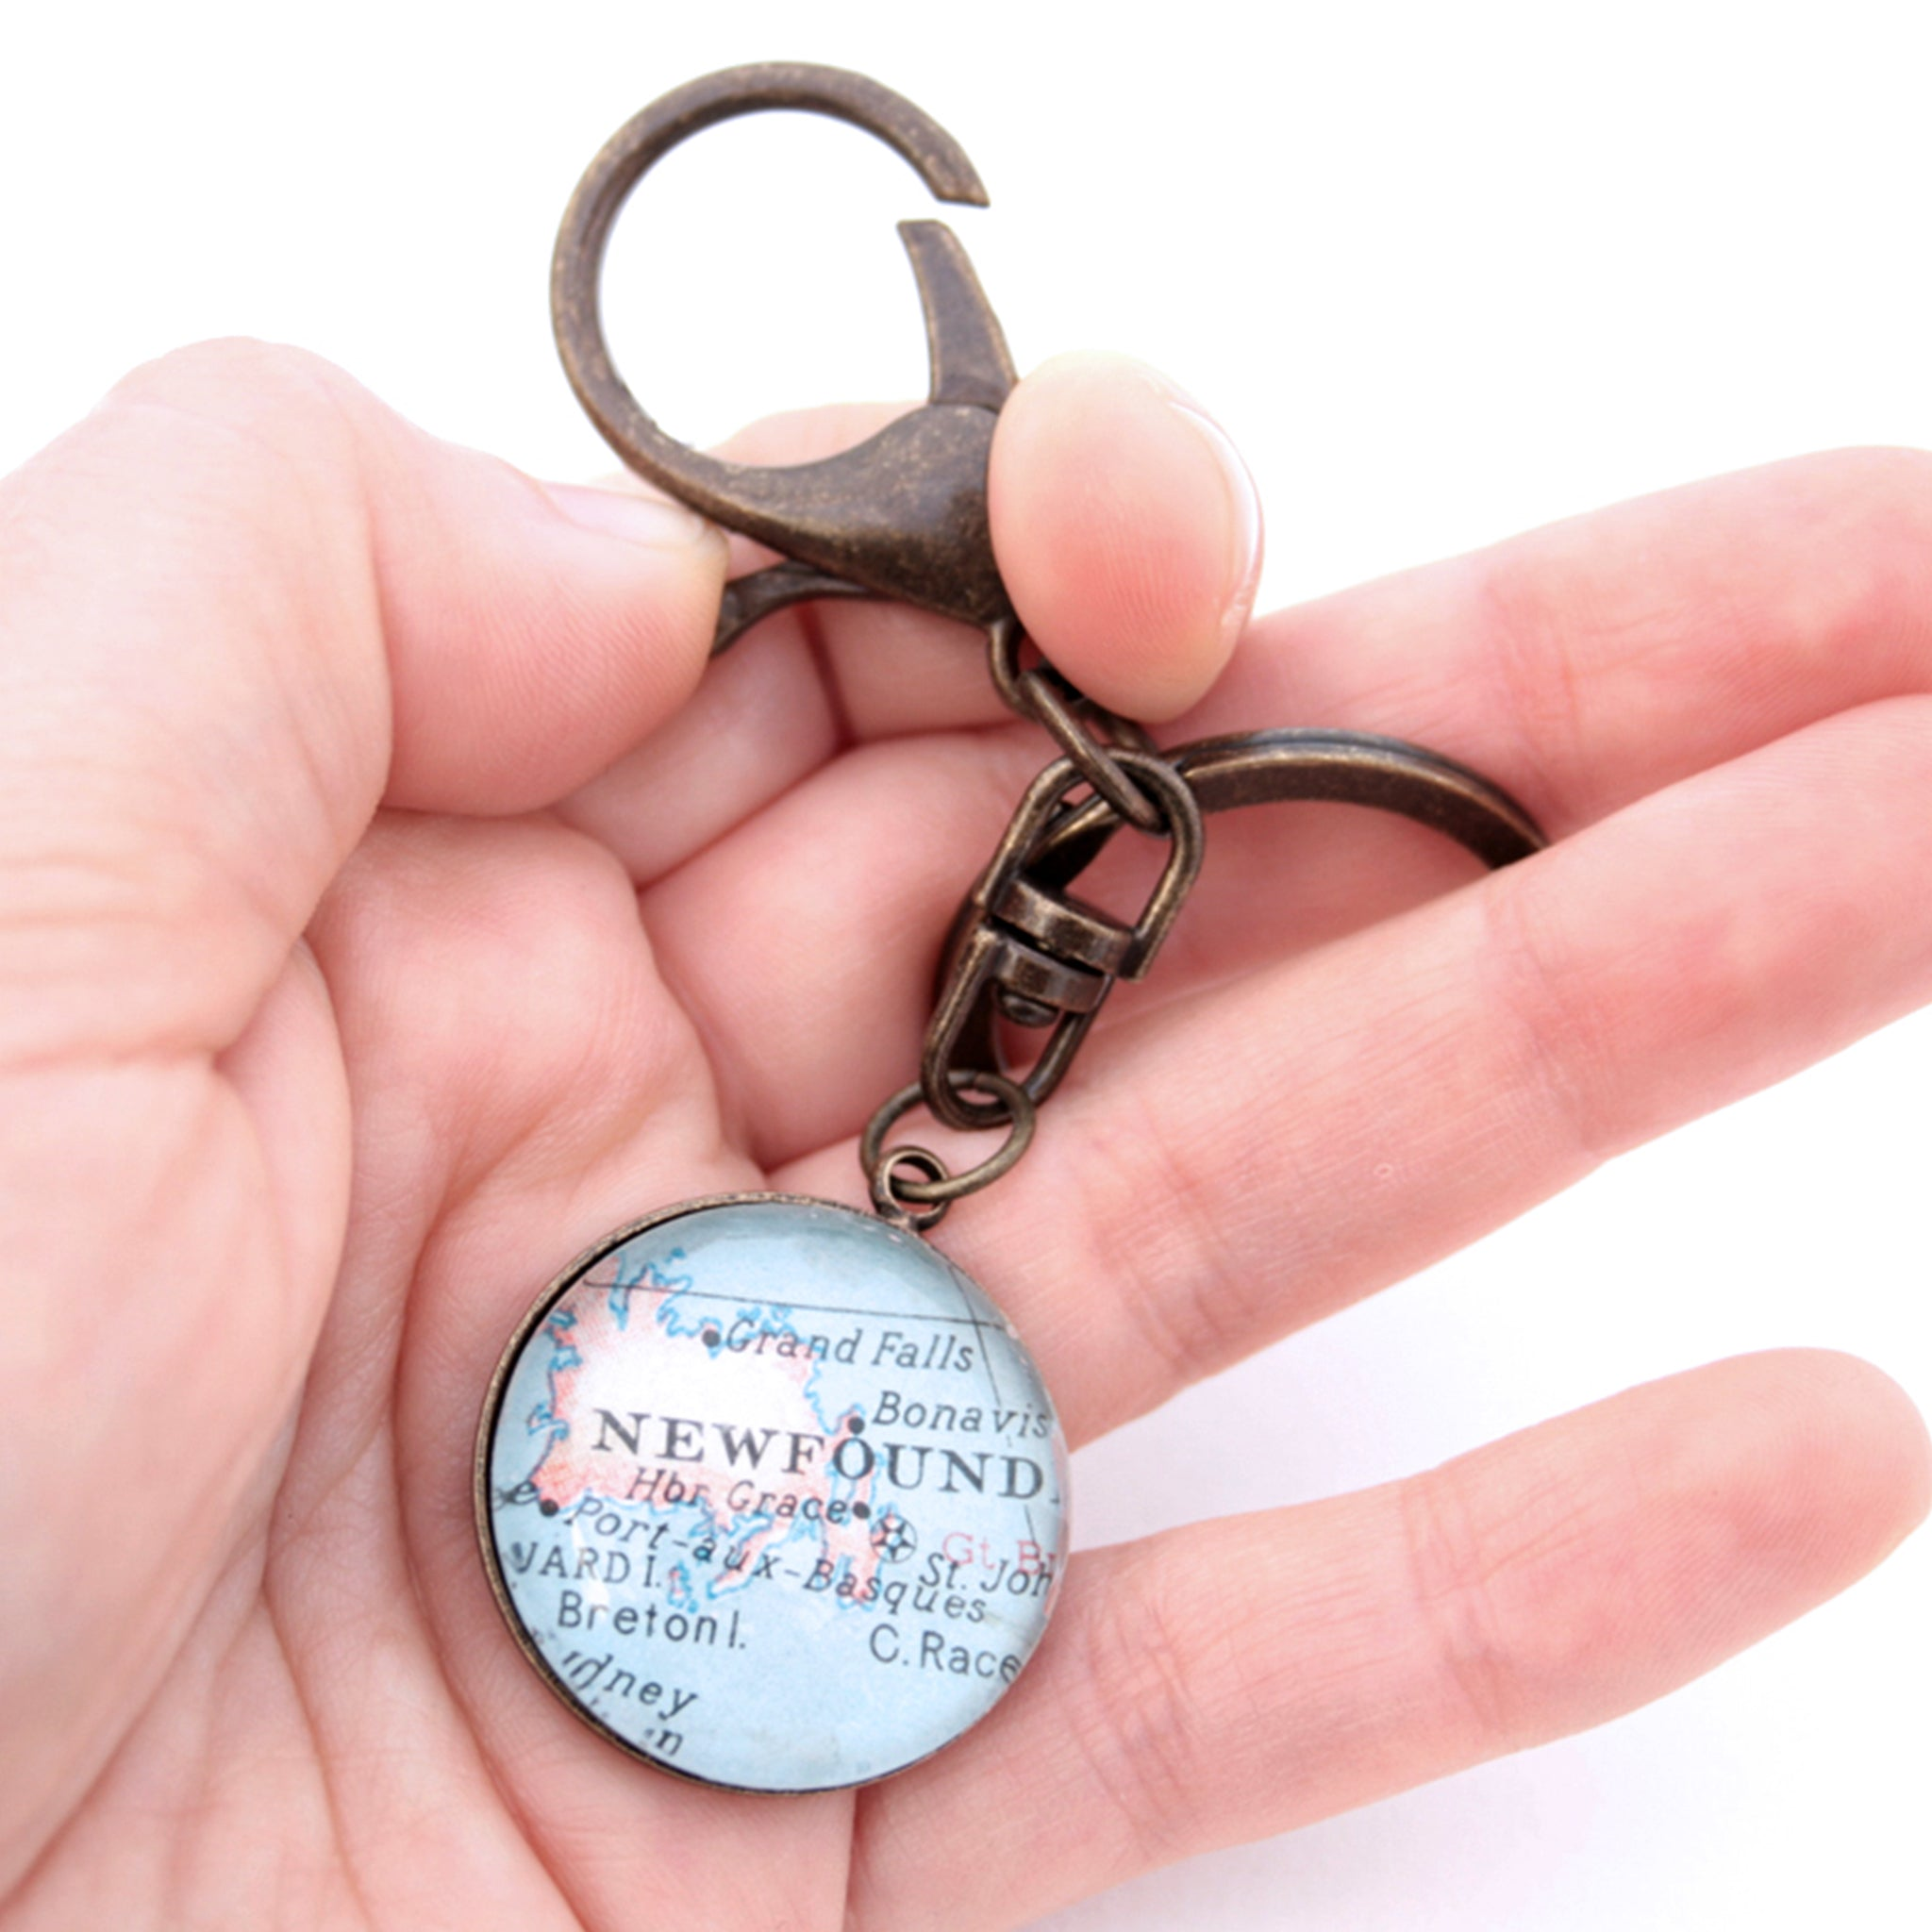 HOld in hand Personalised keyring in antique bronze color featuring map of Newfoundland